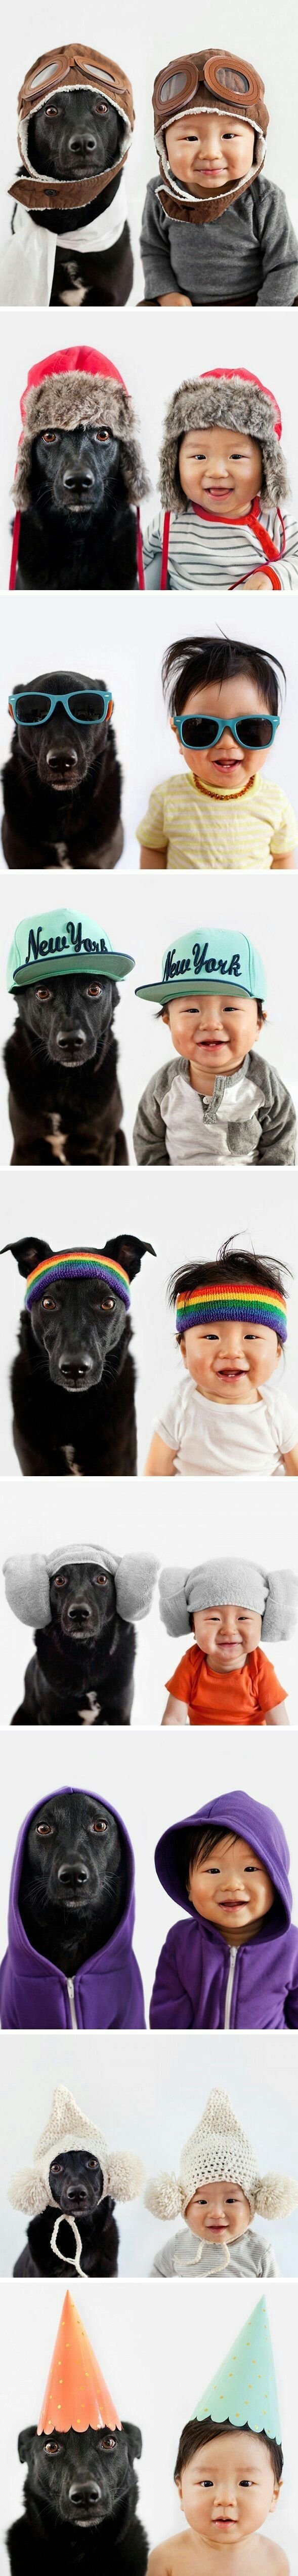 best pampered pets uc images on pinterest doggies cats and dog cat